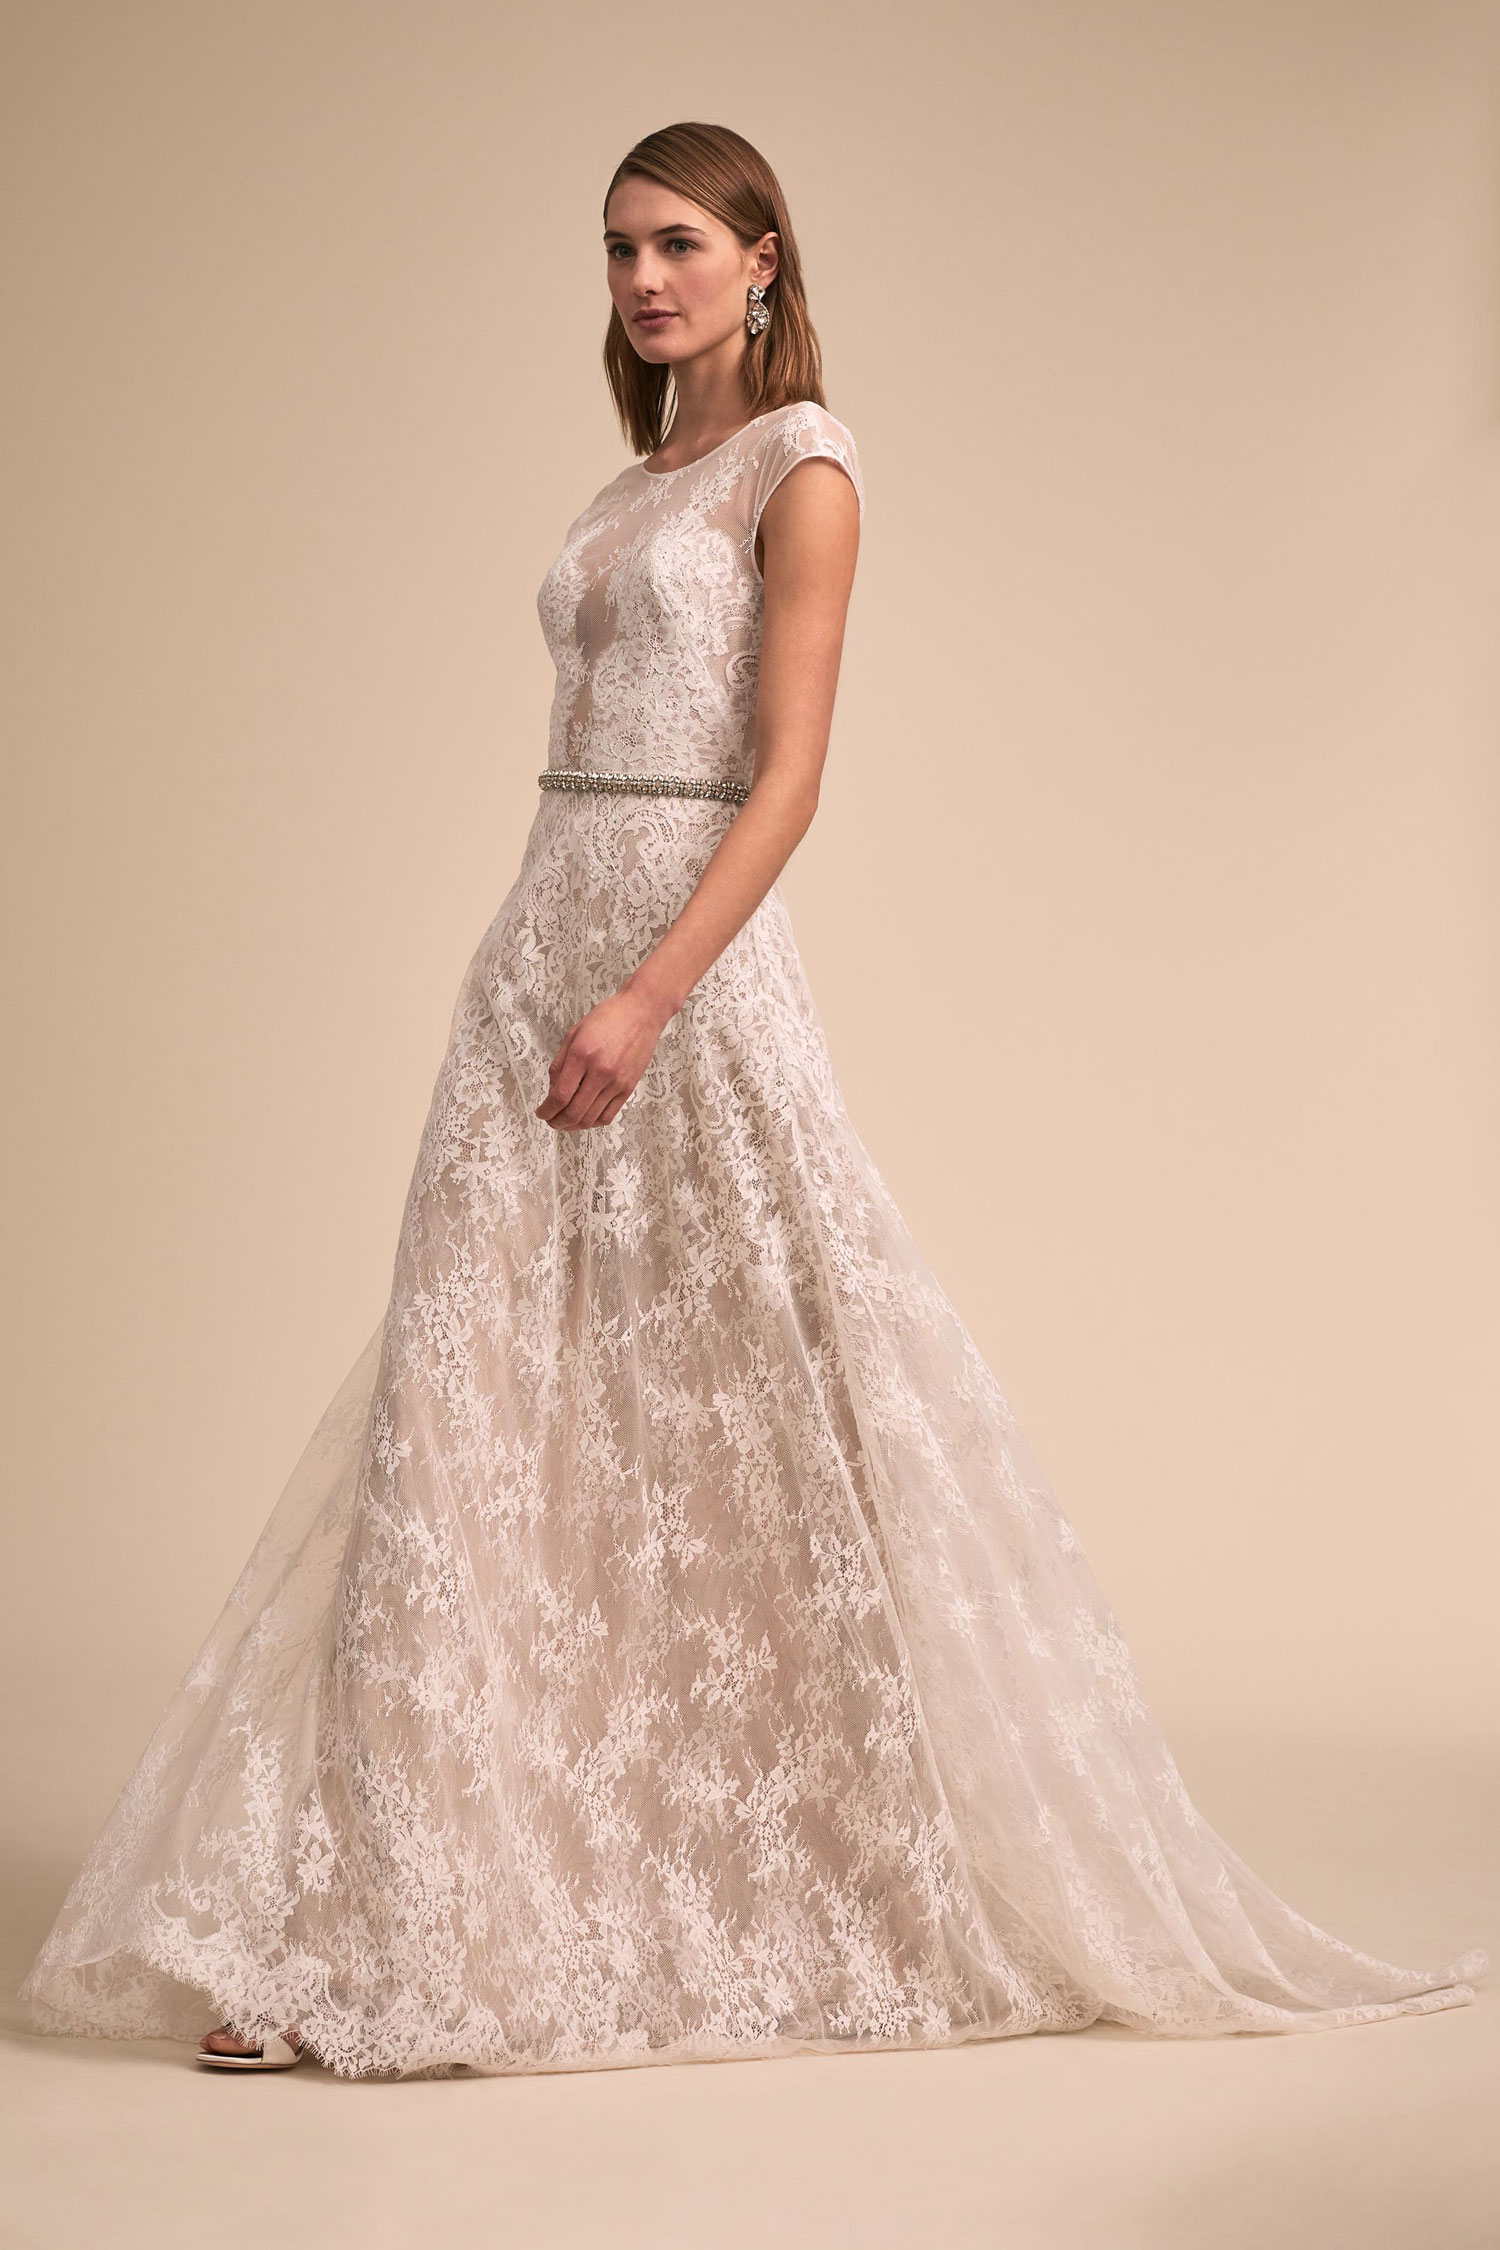 BHLDN The Designer Collective Felicia lace gown by THEIA cap sleeves illusion bodice